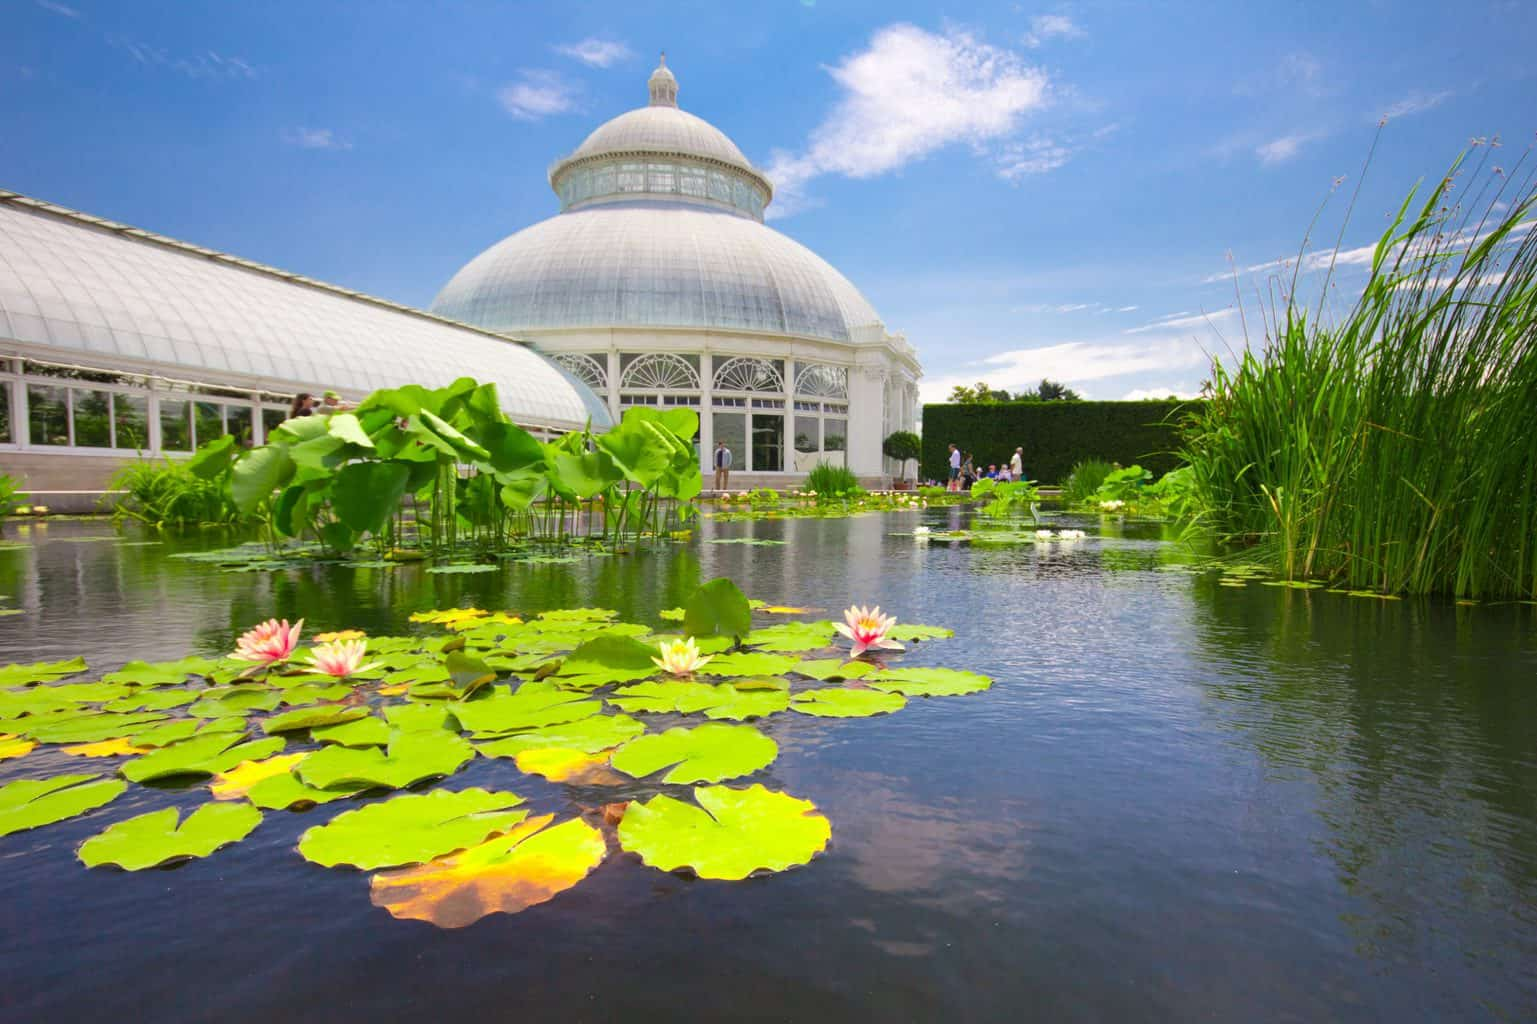 A stunning view of some of the greenhouses you'll find at the New York Botanical Gardens